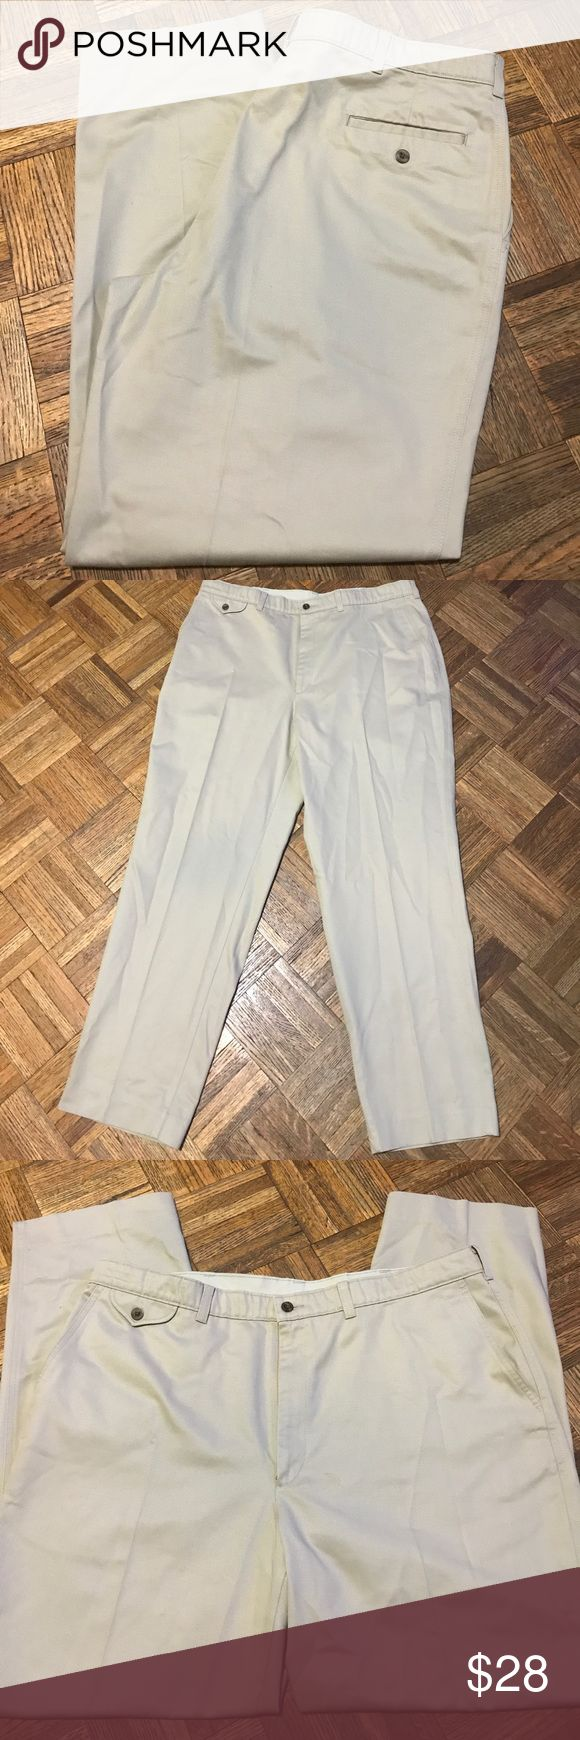 Savane Men's Scotchgard Pants Size 40X32 This is a pair of scotchgard pants that are in great condition. Size 40X32 Savane Pants